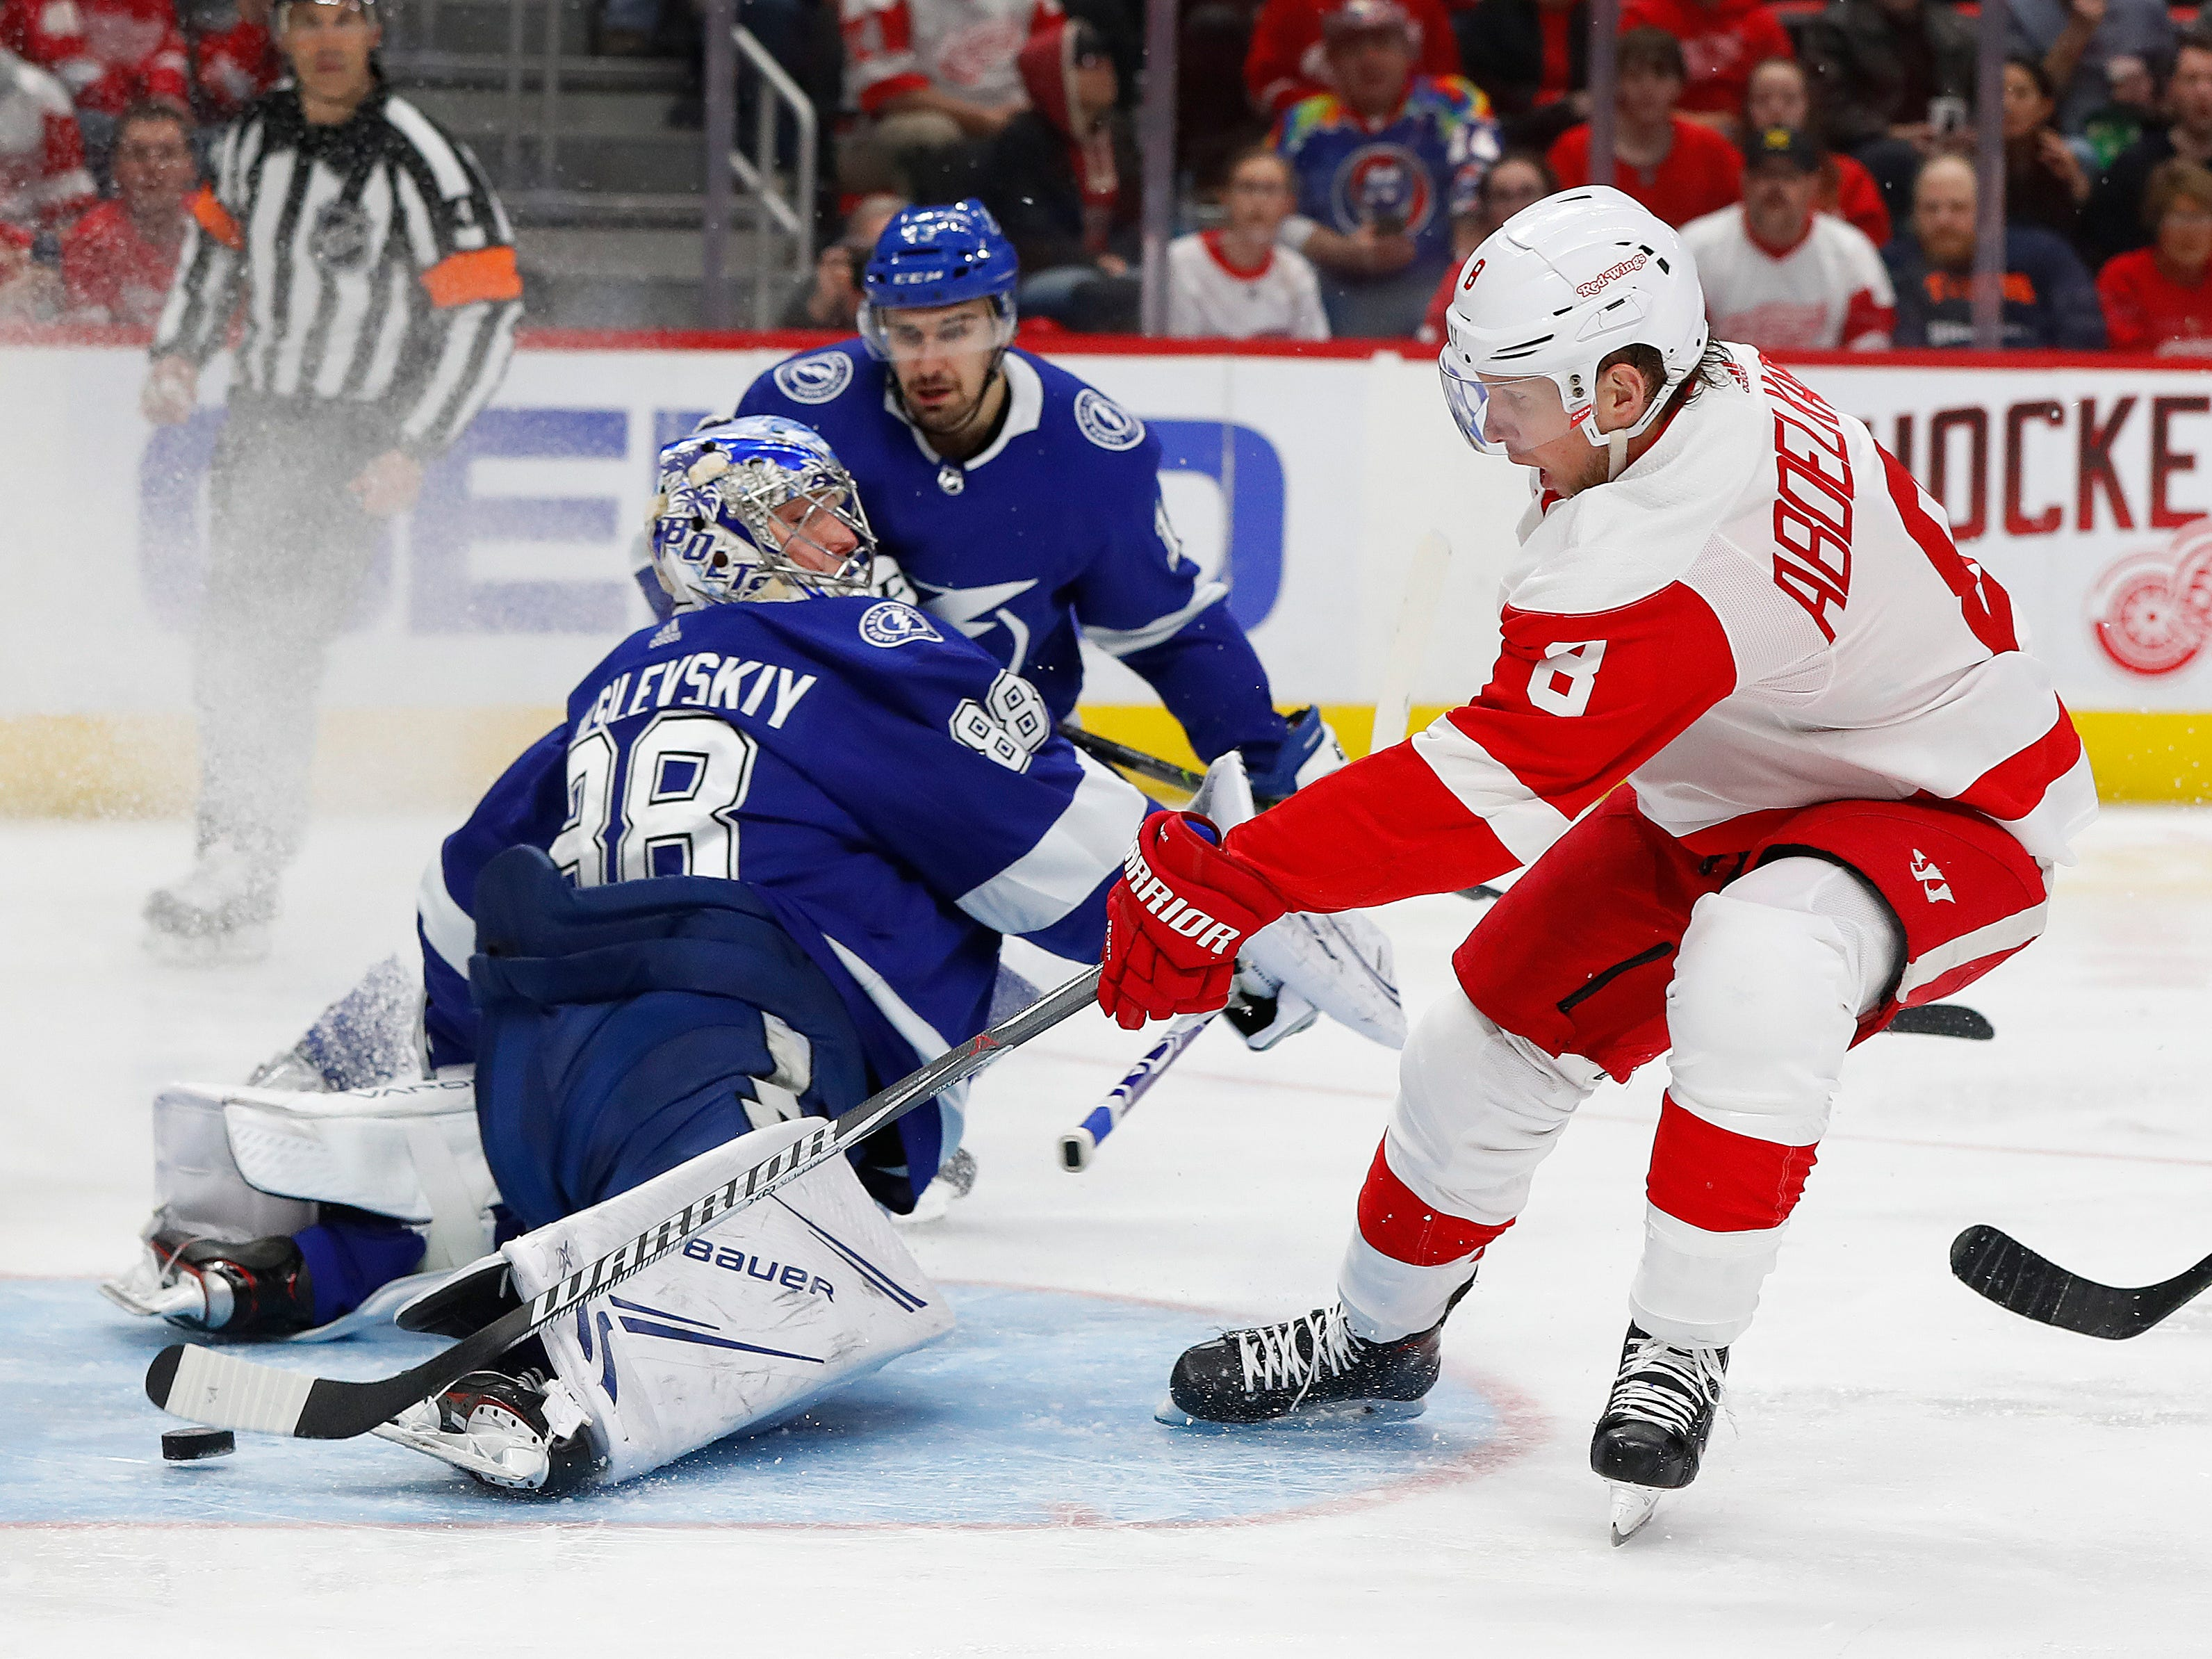 Detroit Red Wings left wing Justin Abdelkader (8) scores on Tampa Bay Lightning goaltender Andrei Vasilevskiy (88) in the second period on Thursday, March 14, 2019, in Detroit, Michigan.  In the end, the LIghtning beat Detroit 5-4.